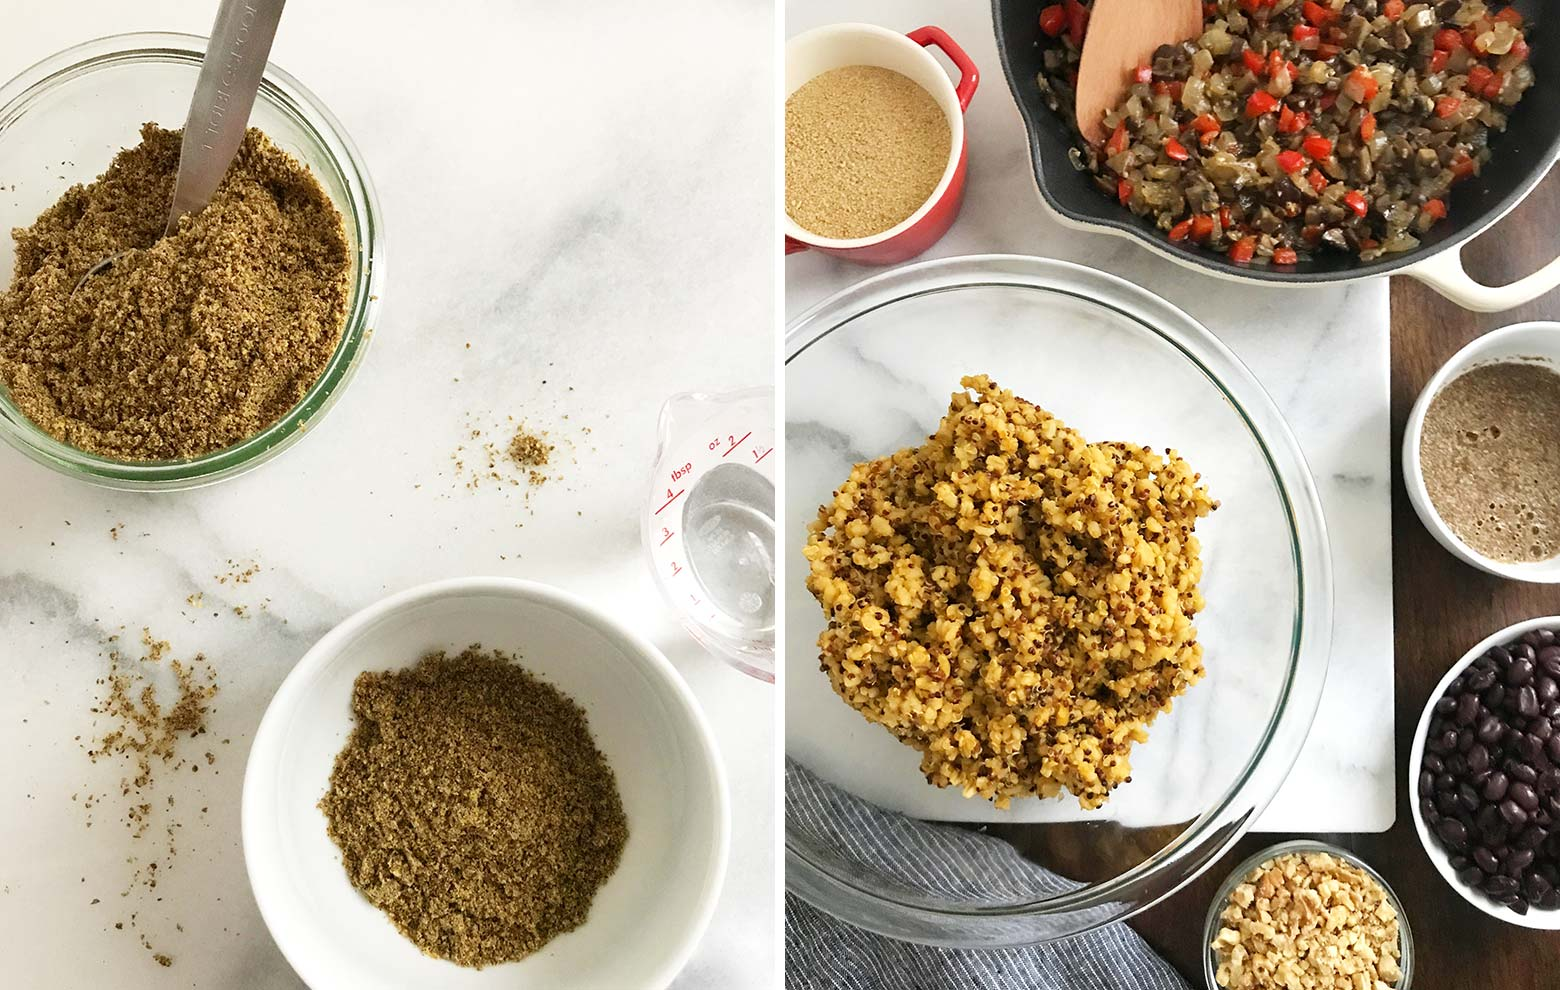 Left photo: flaxseed meal and water to create a flax egg. Right photo: A glass bowl with the grain mixture, surrounded by all the other loaf ingredients.